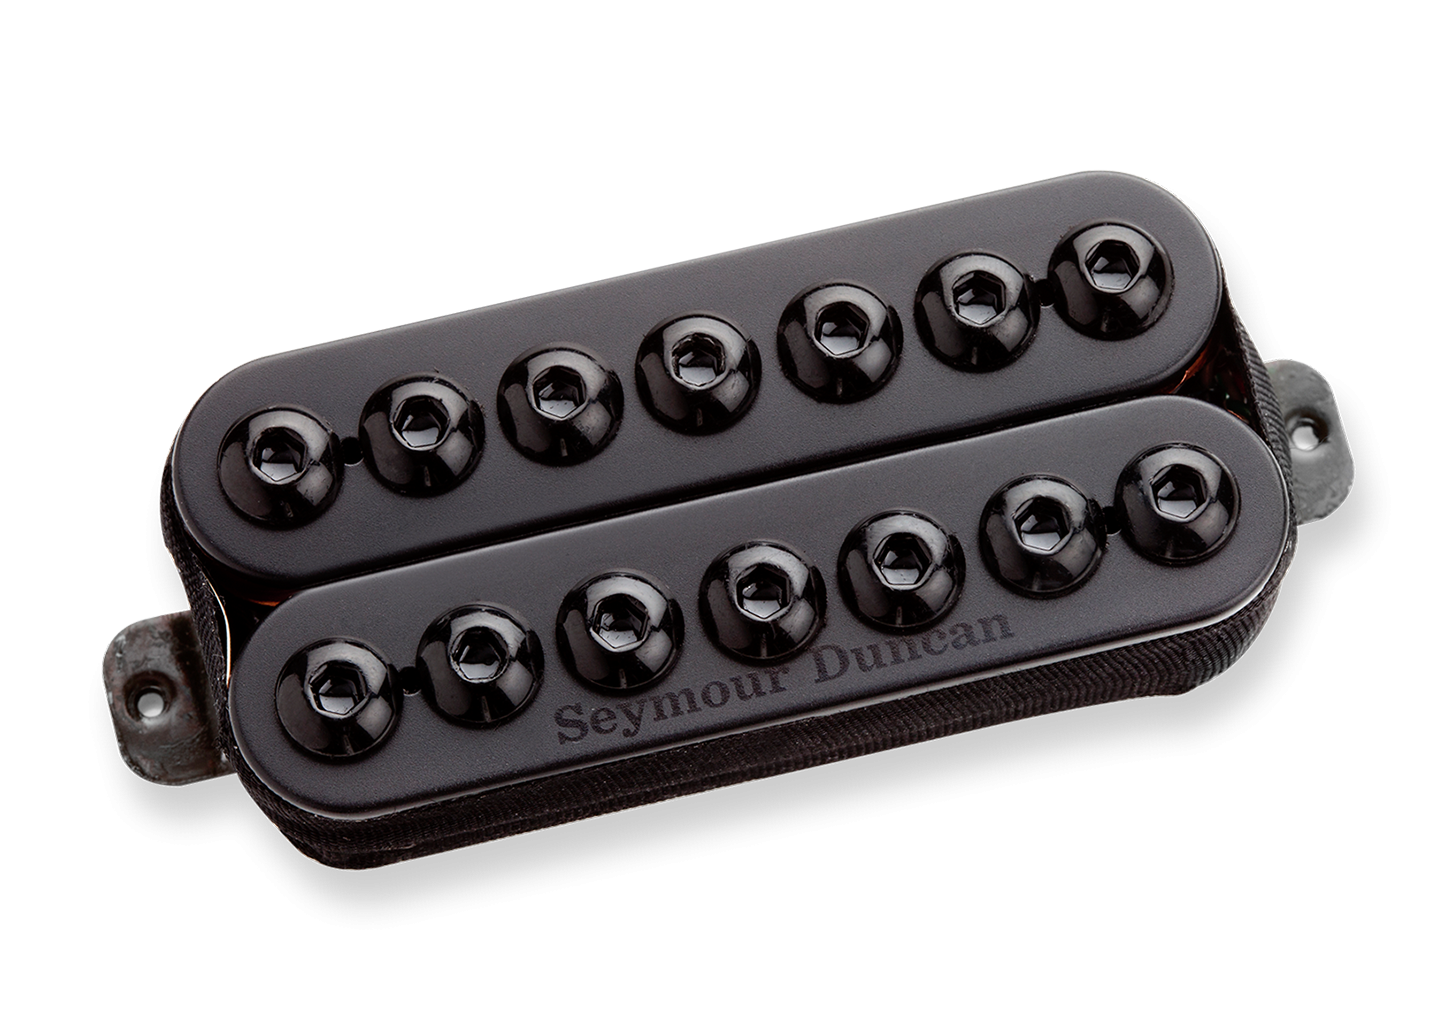 Seymour Duncan Invader Humbucker - SH-8B 7 String Bridge Passive Mount Black